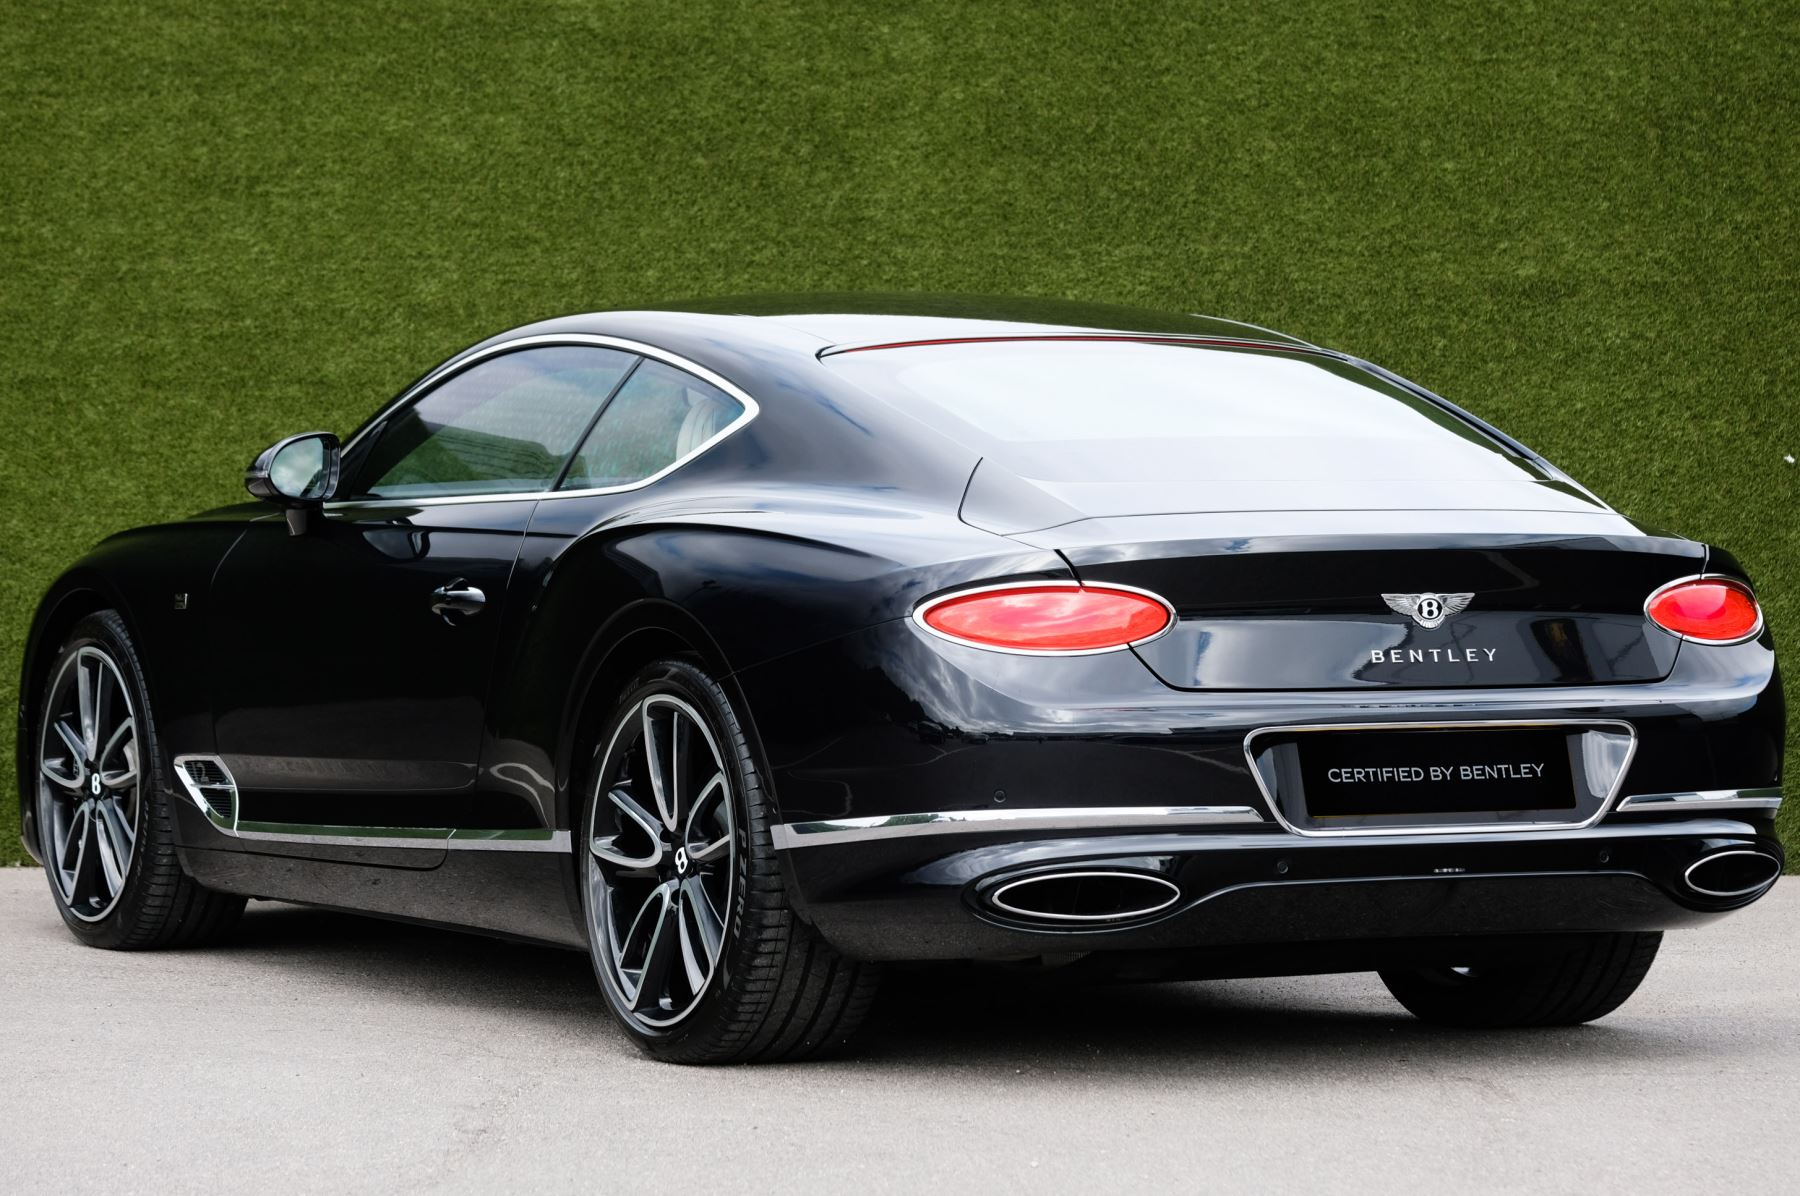 Bentley Continental GT 6.0 W12 1st Edition - Comfort Seating - Touring Specification image 5